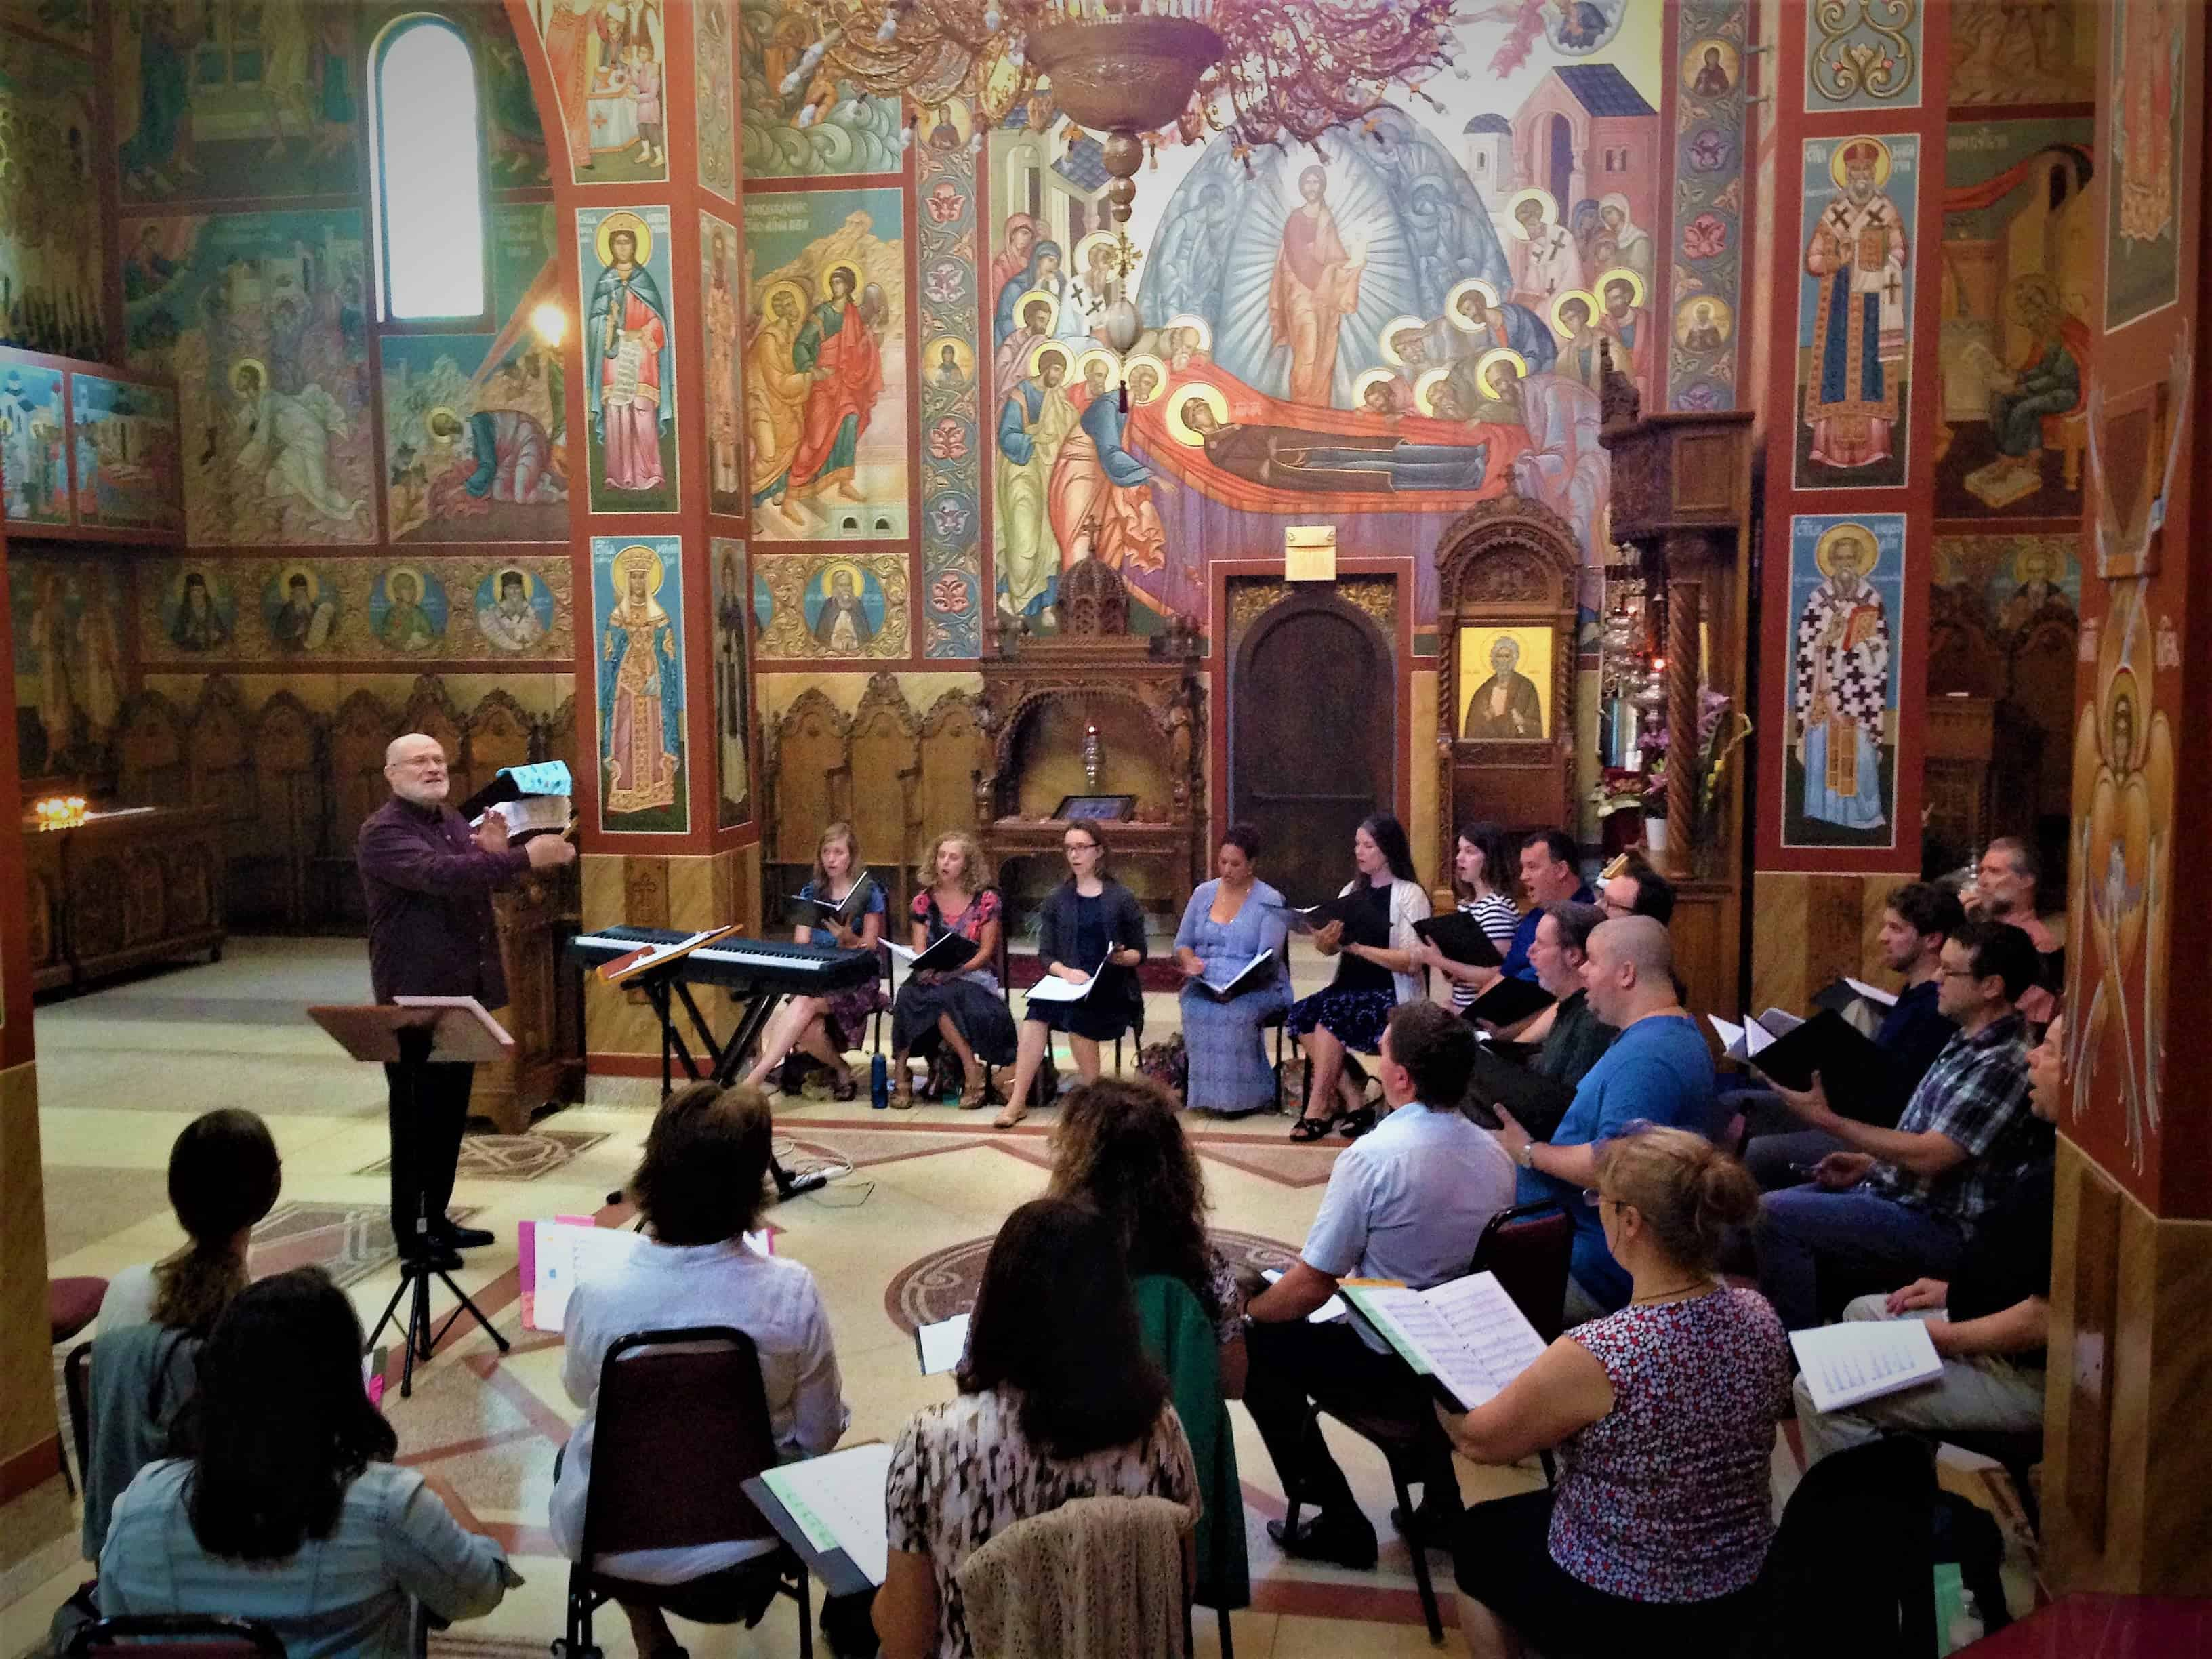 Kurt Sander: The Divine Liturgy of St. John Chrysostom recording session photo